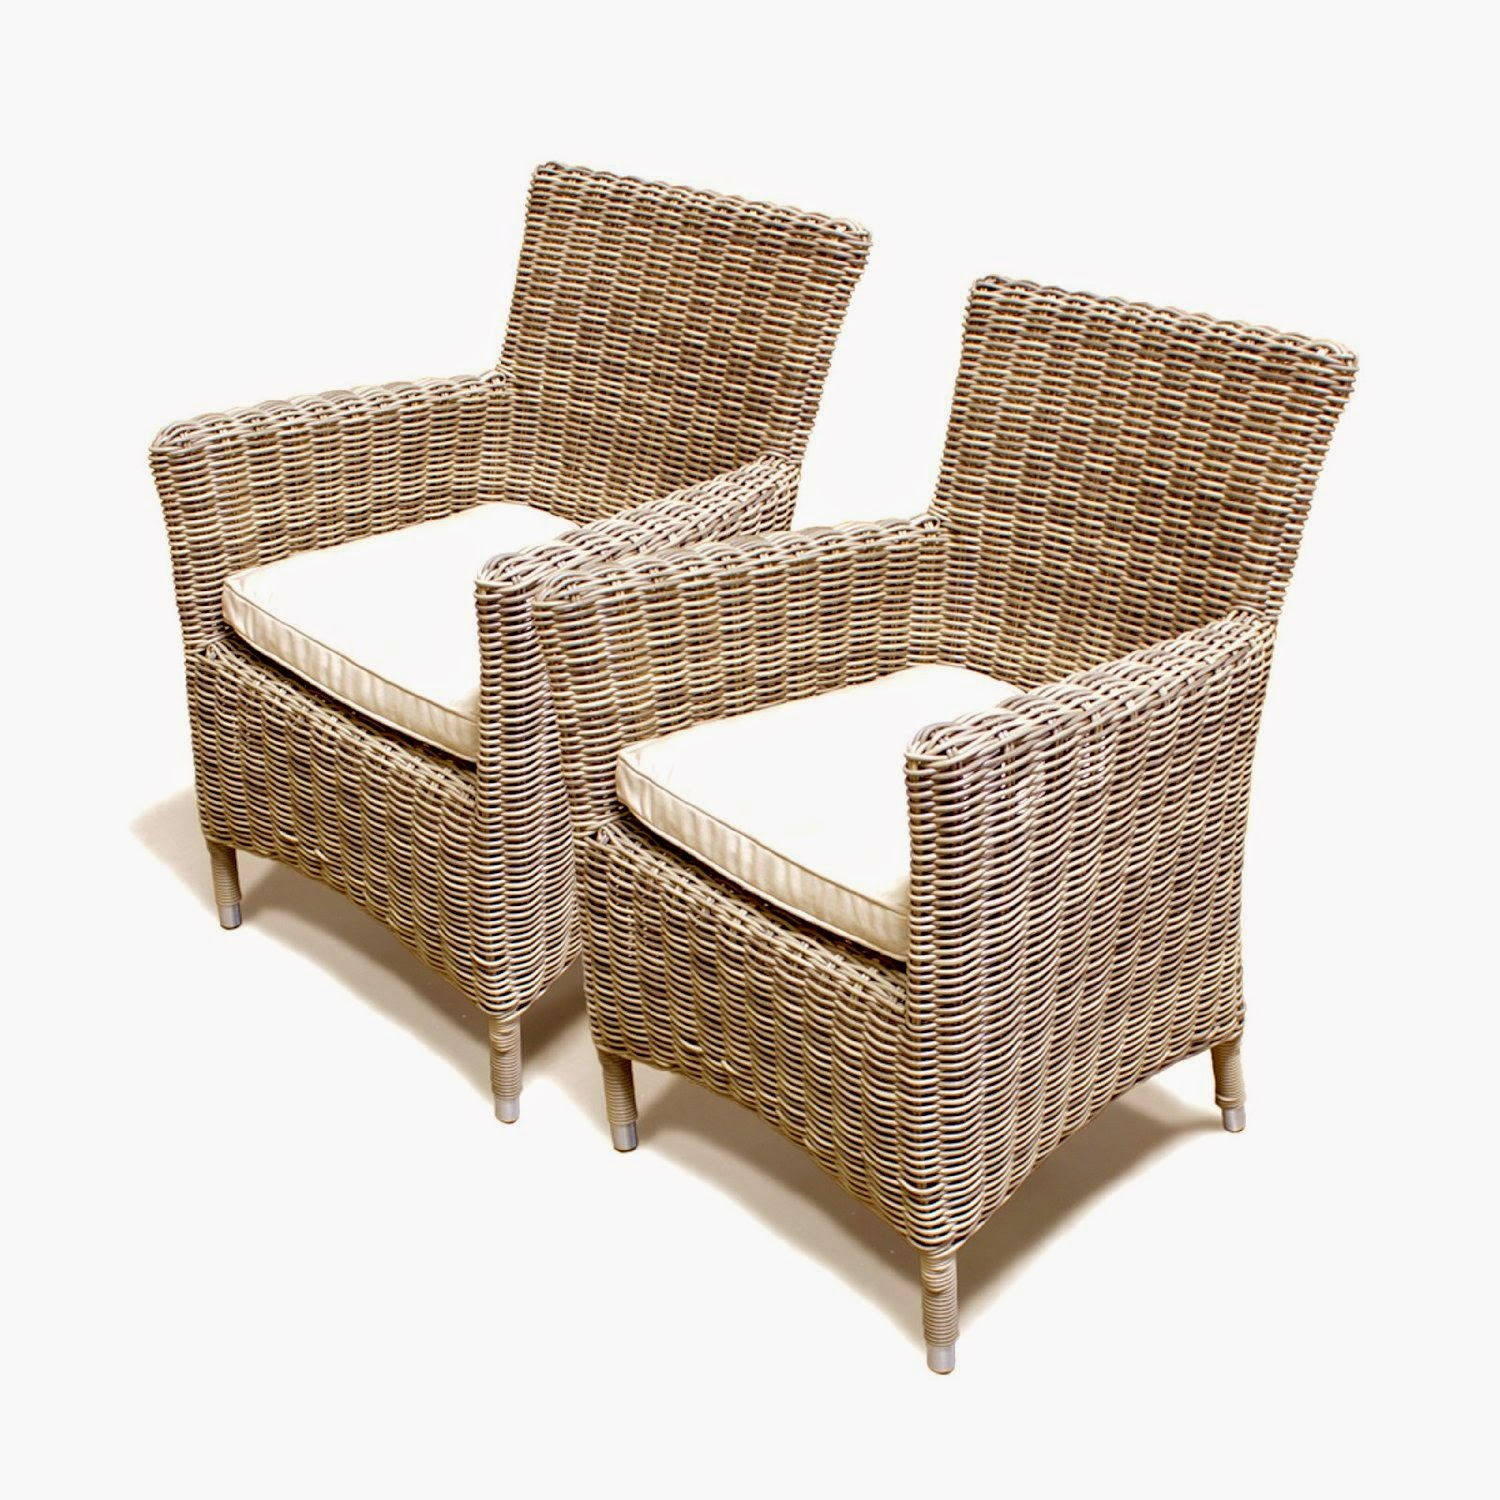 TK Classics Outdoor Wicker Furniture